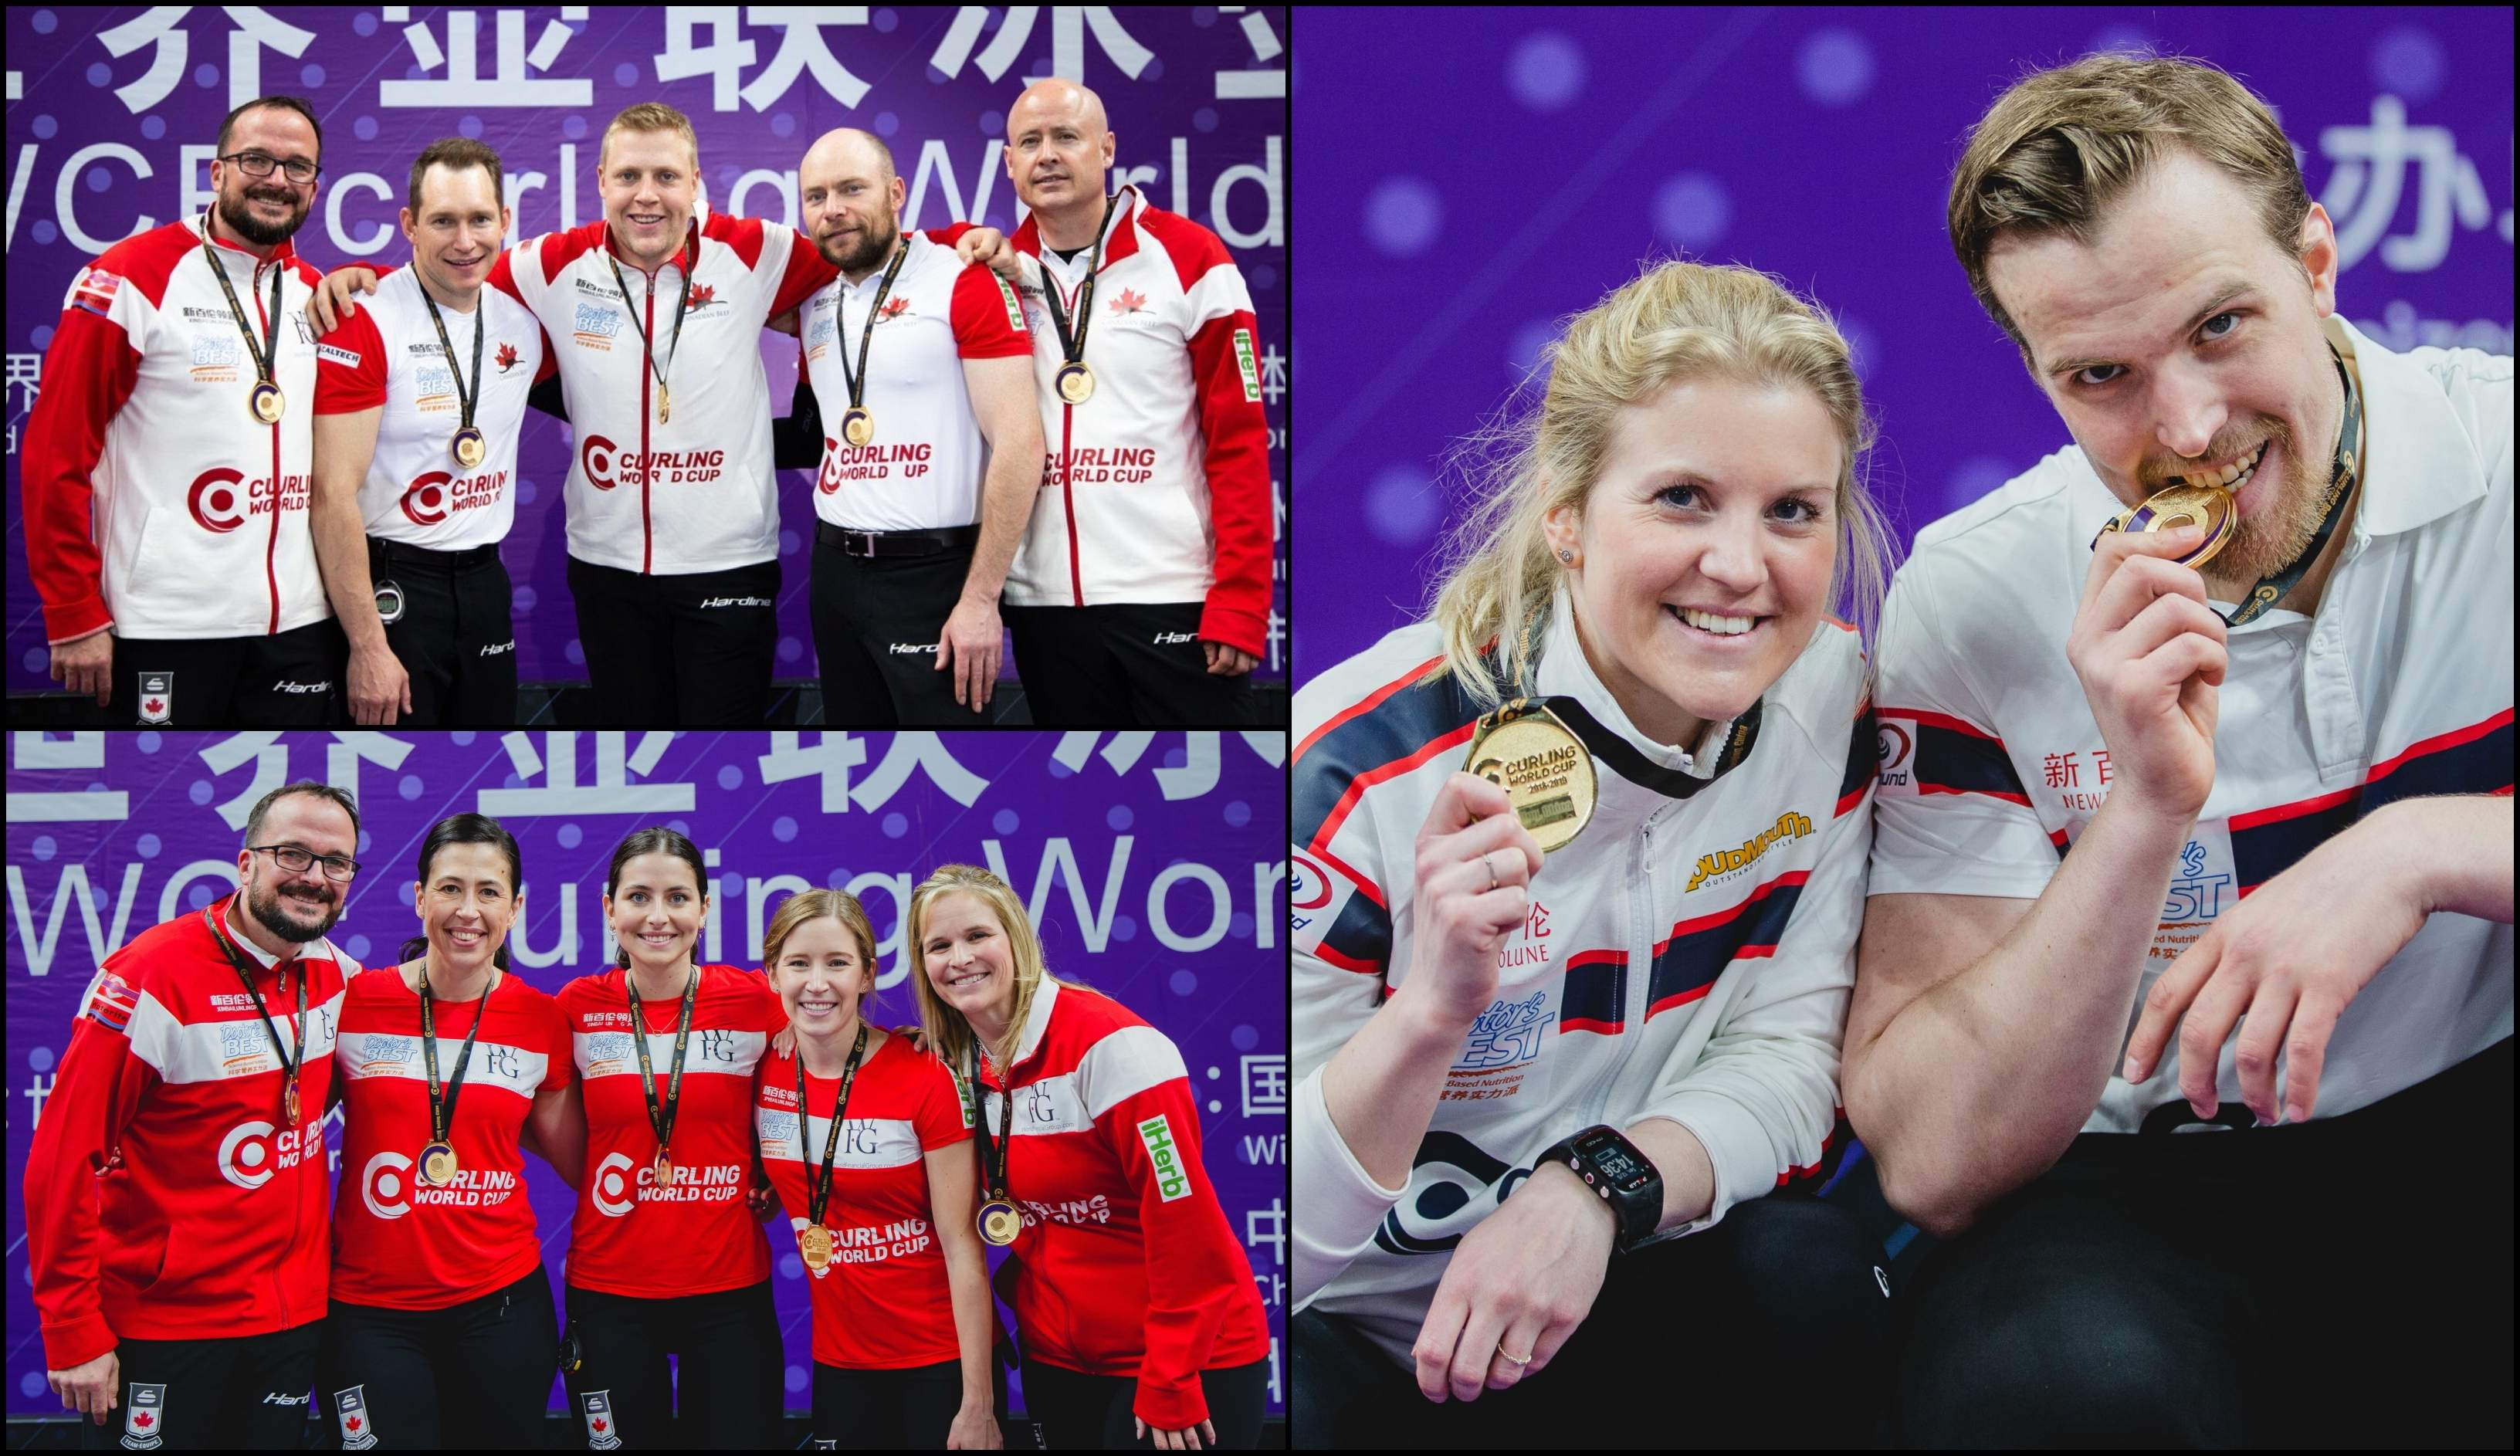 Canada's Jones and Koe win Curling World Cup Grand Final1